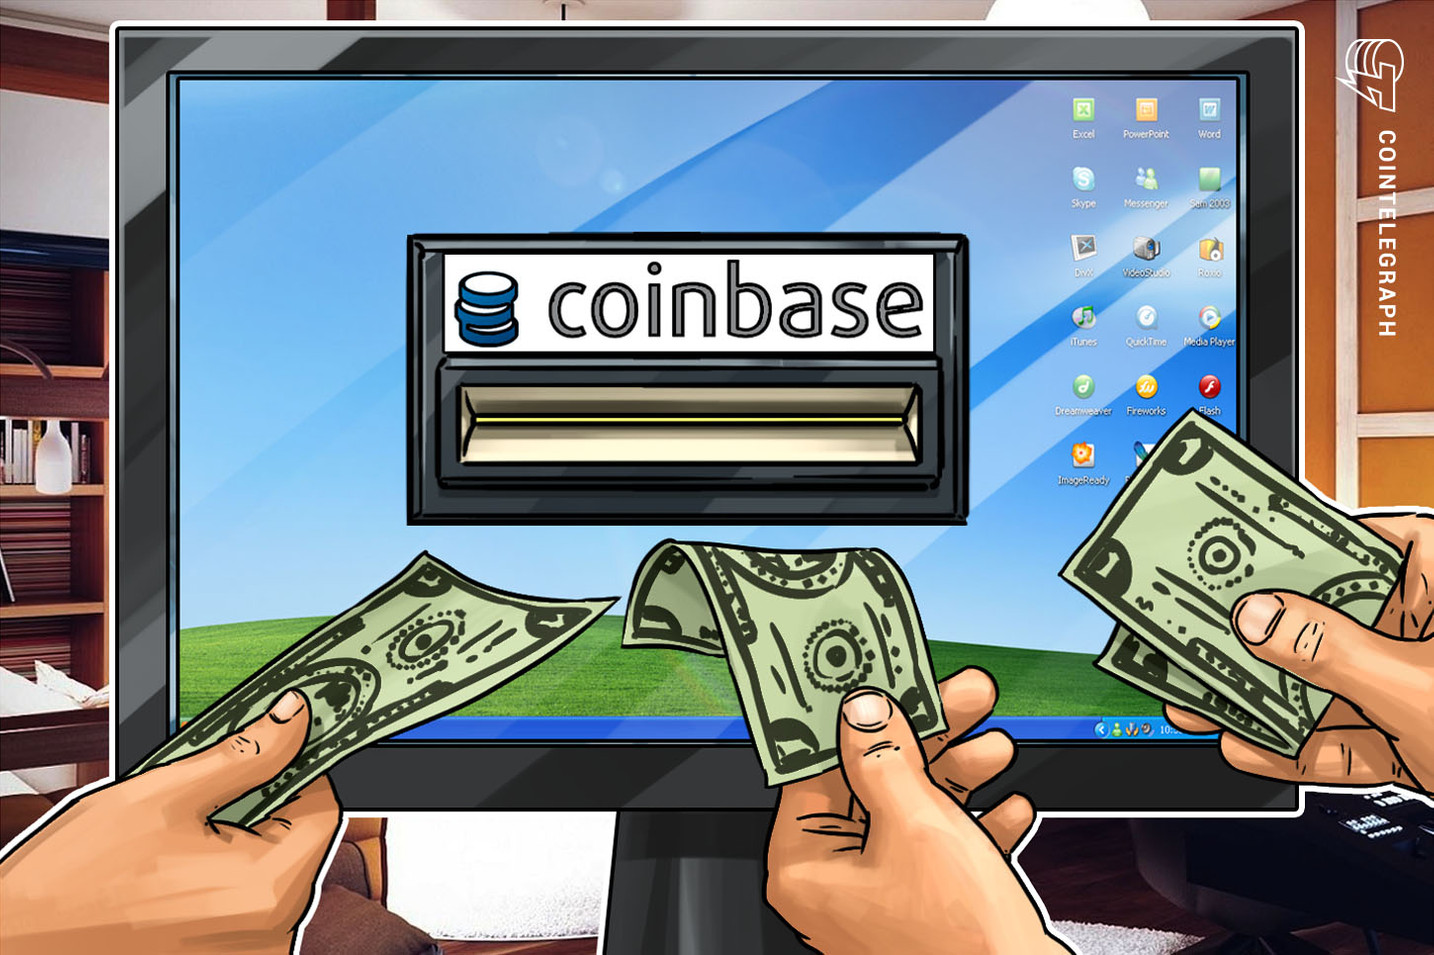 Research: Coinbase U.S. Dollar Volume Hits One-Year Low in Third Quarter of 2018